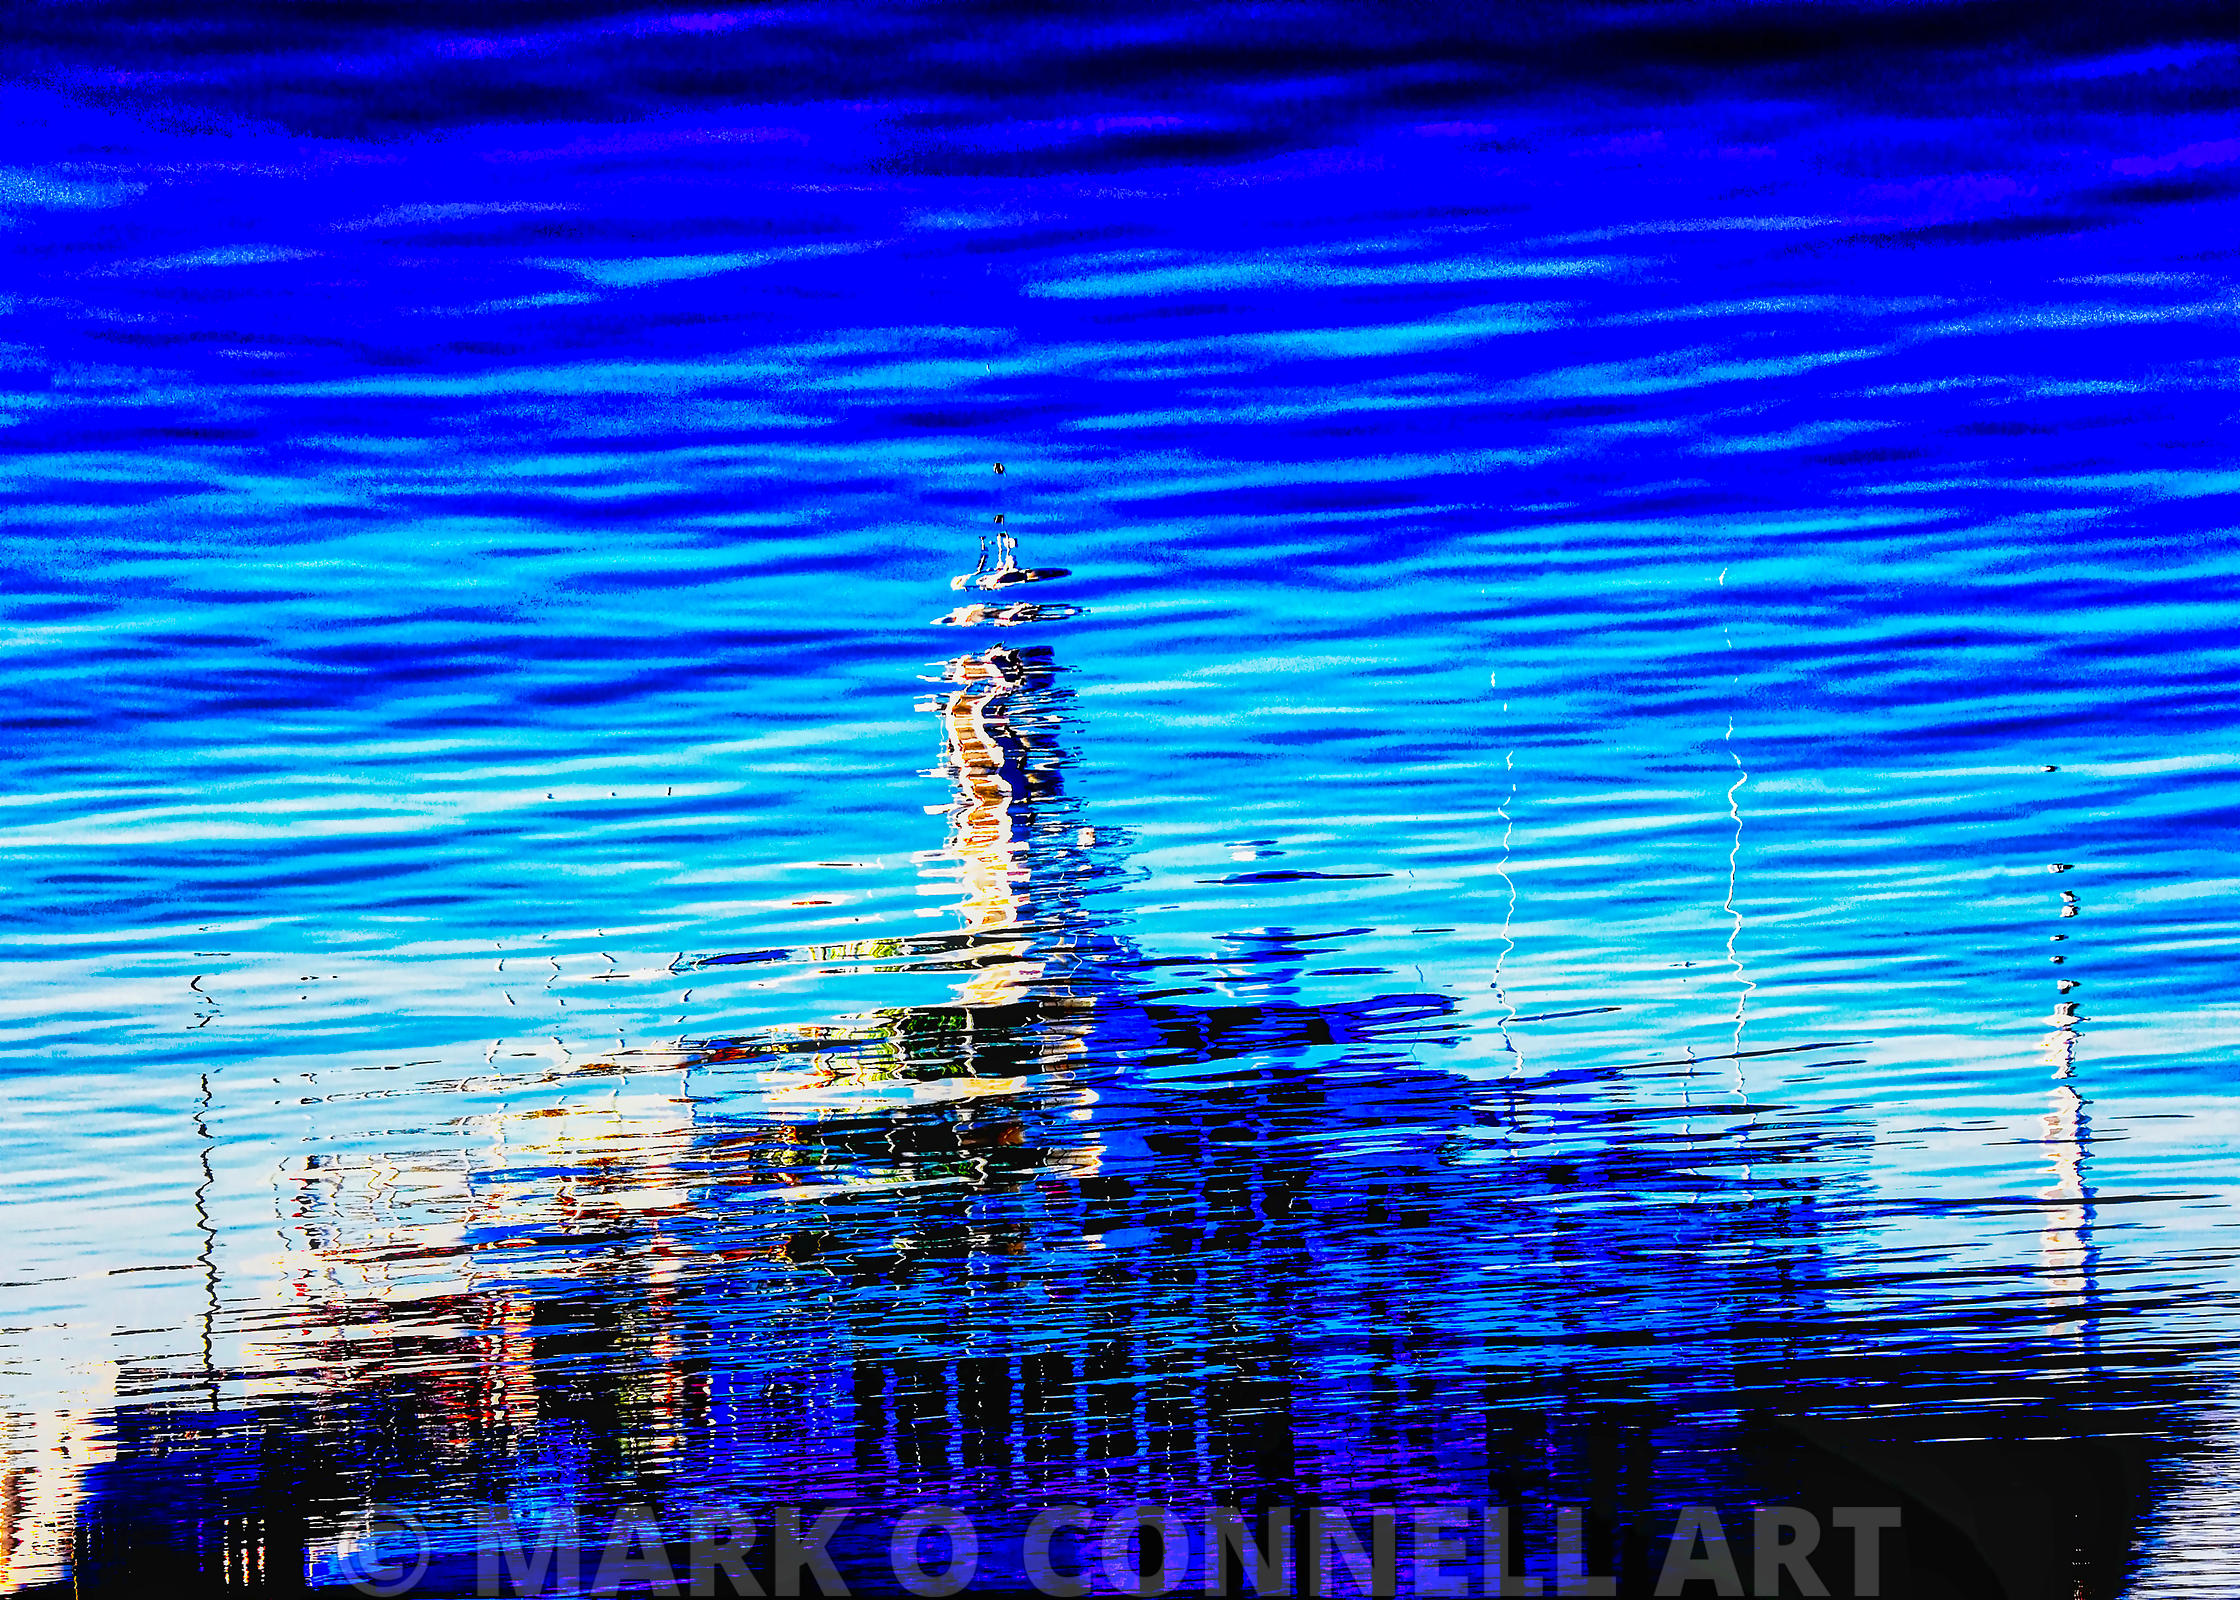 art,airbrush,abstract,water,blue,superyacht,reflection,yogi,ocean,sea,waves